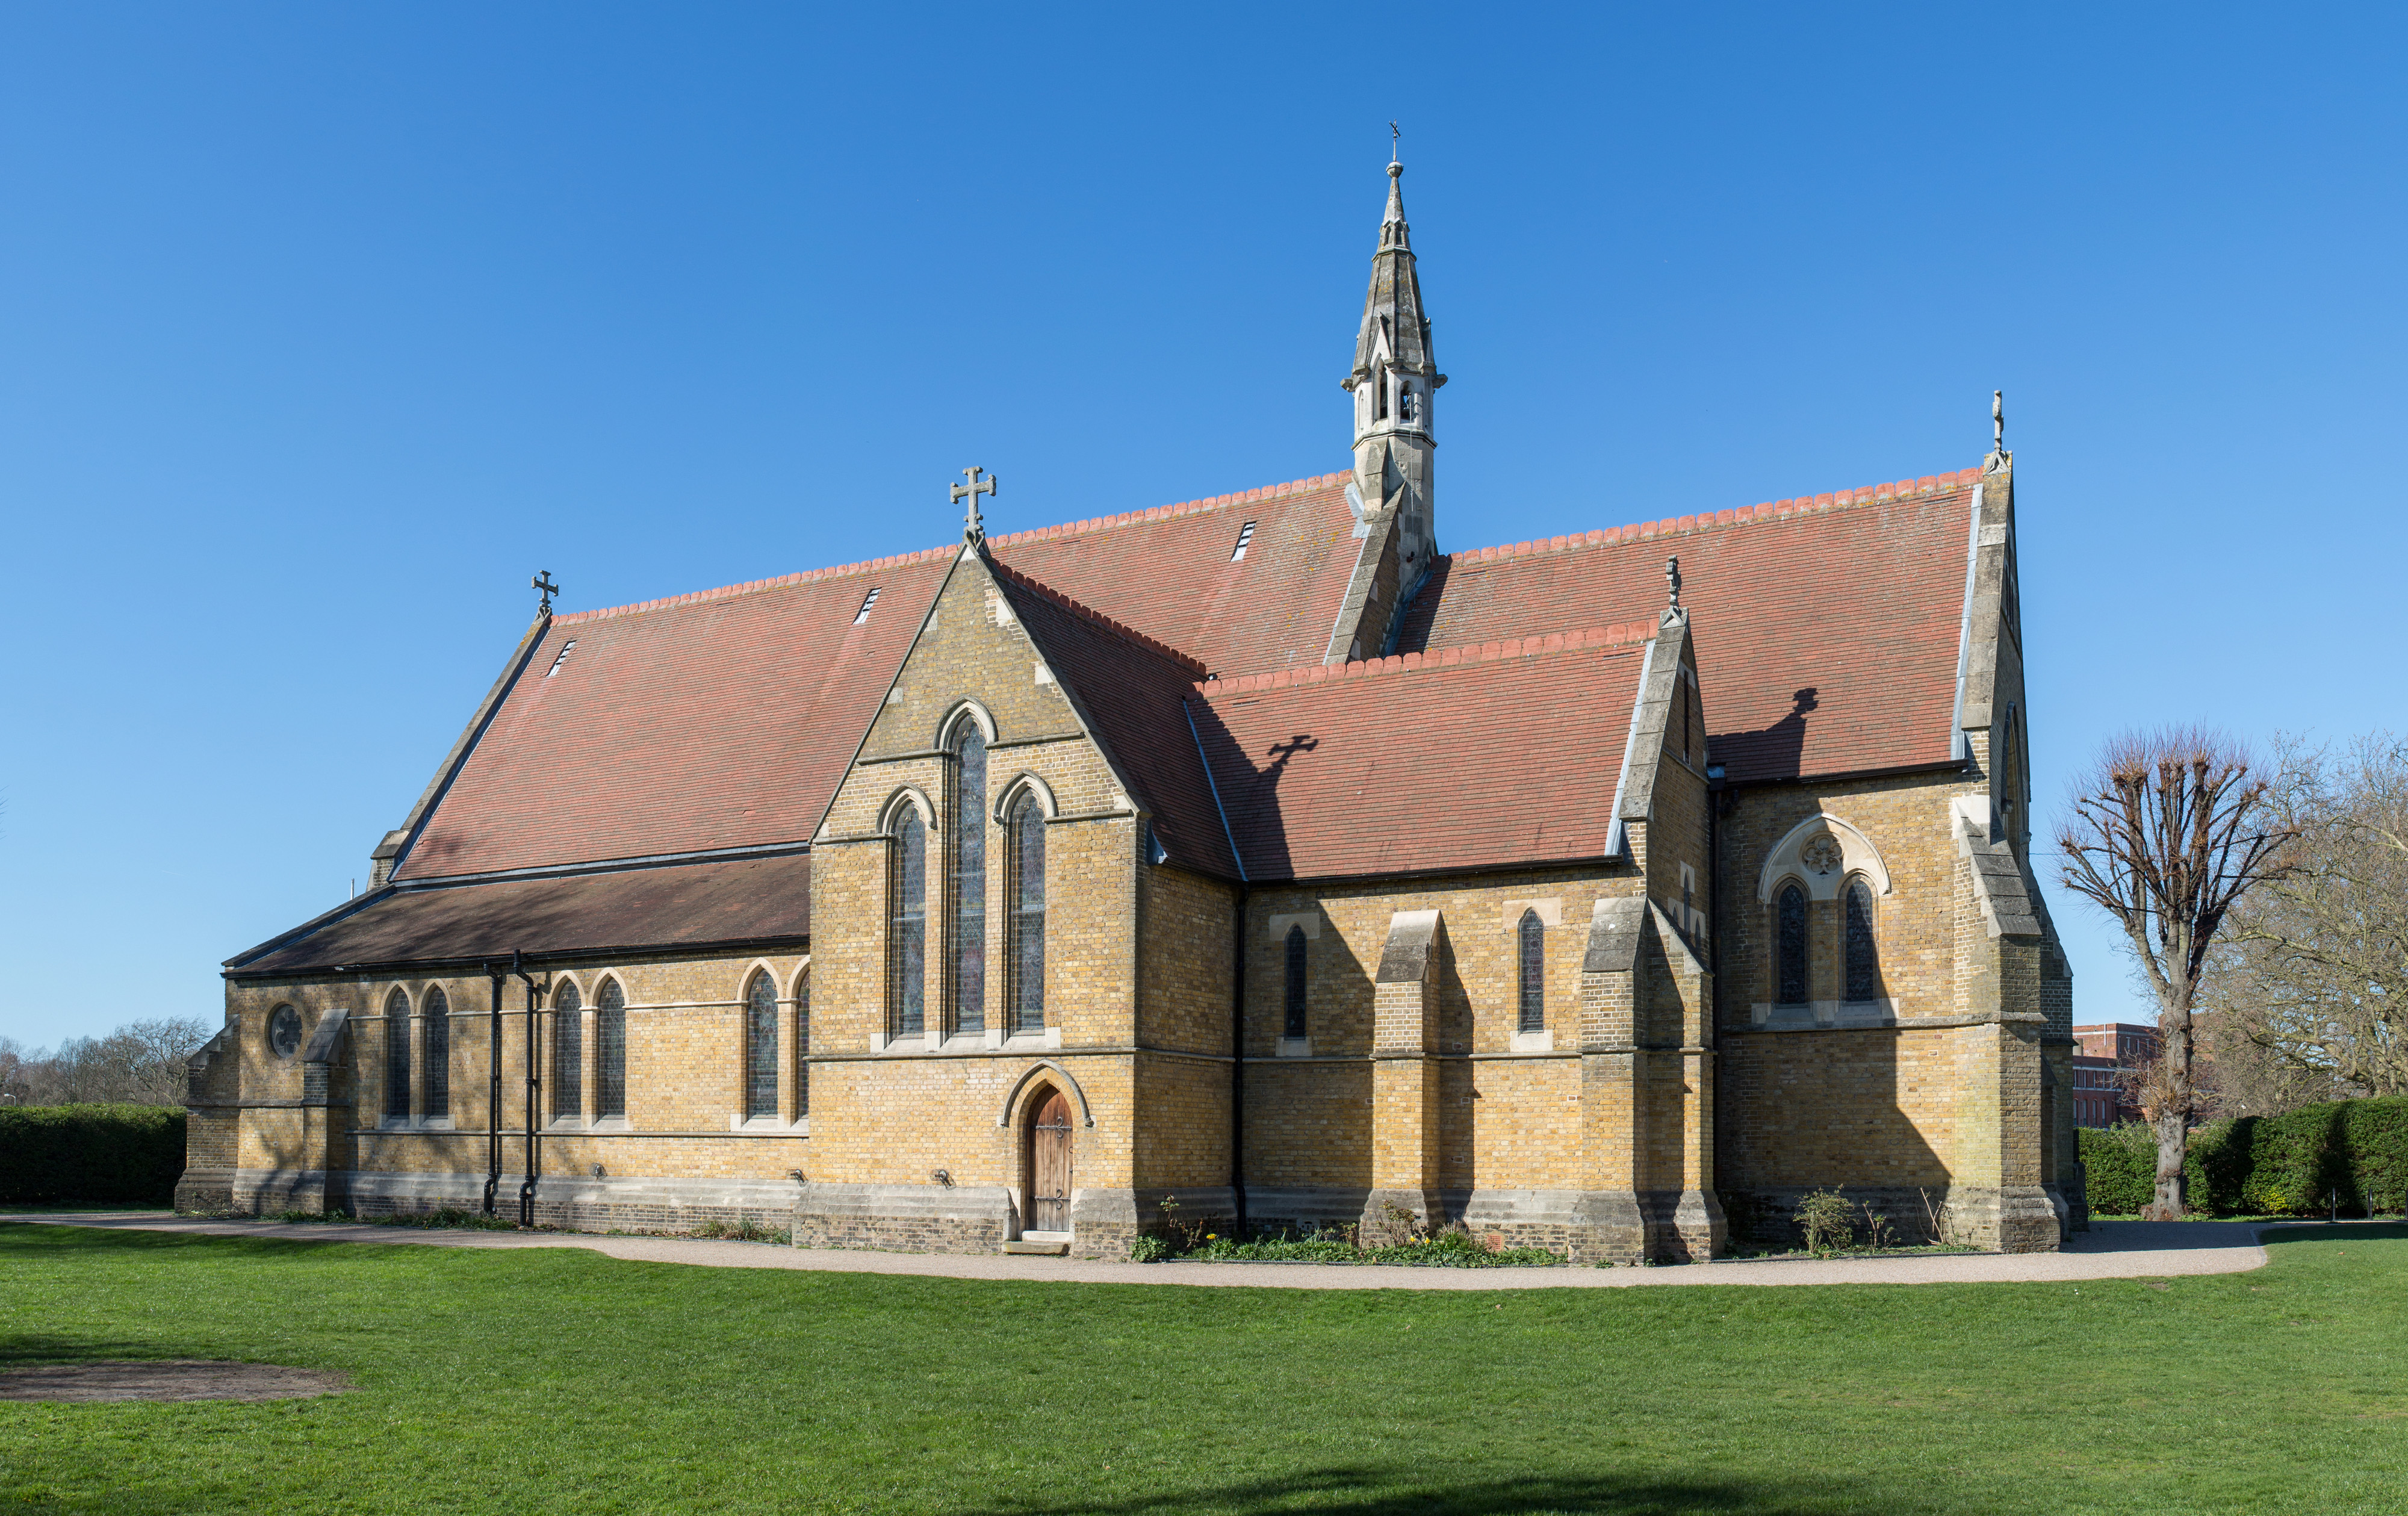 File:All Saints Church, Putney, London - Diliff.jpg - Wikimedia